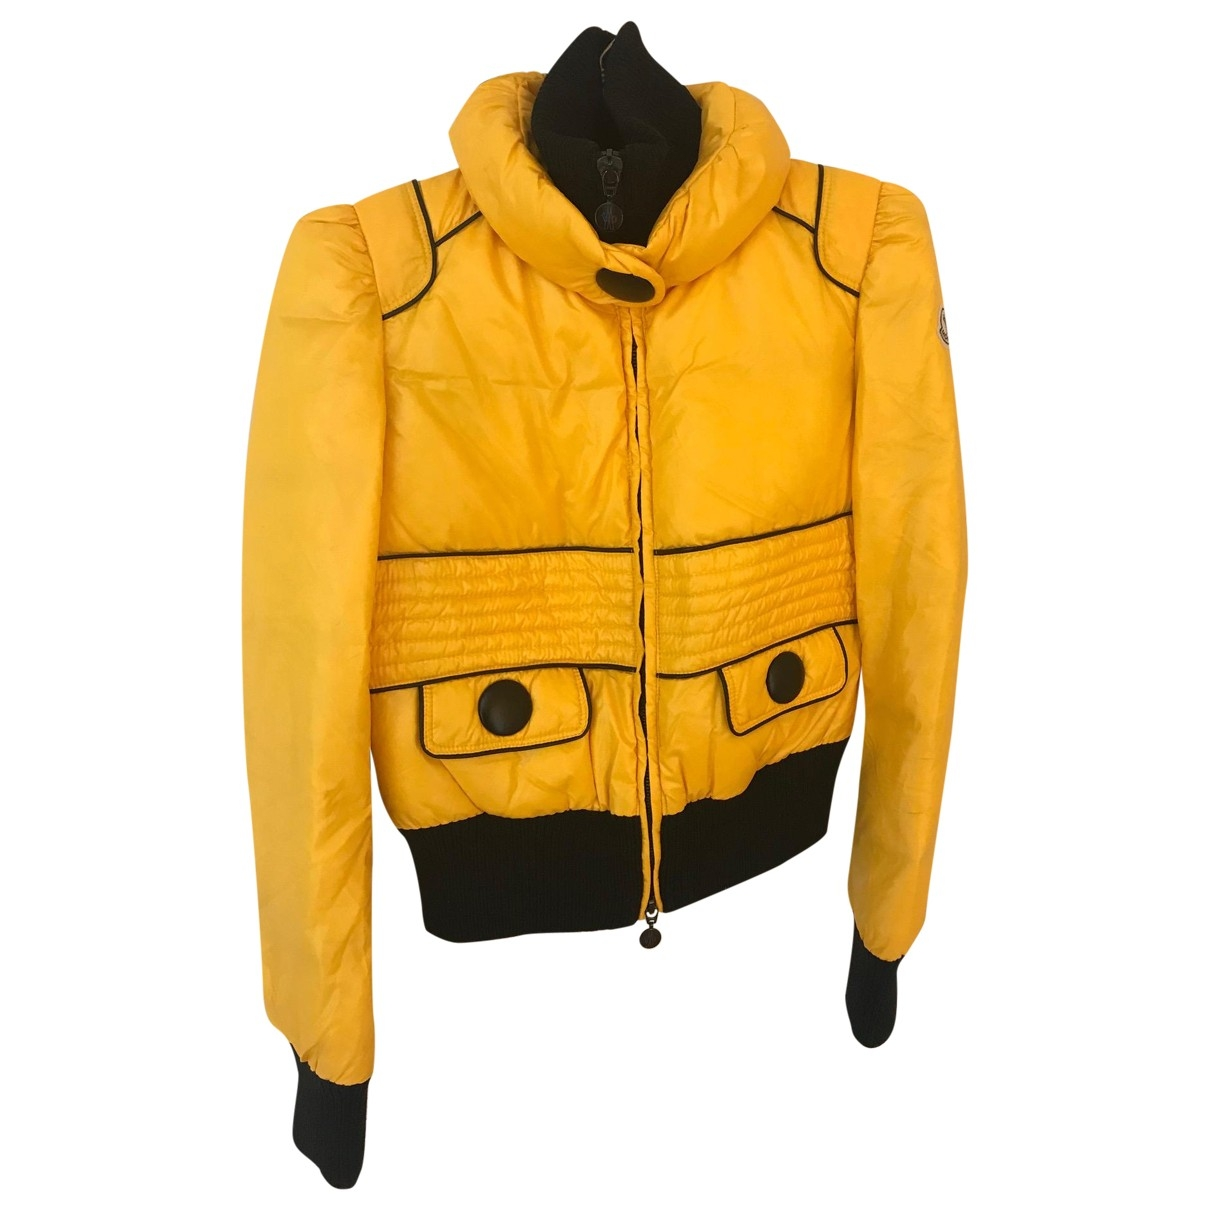 Moncler \N Yellow jacket for Women 1 0-5